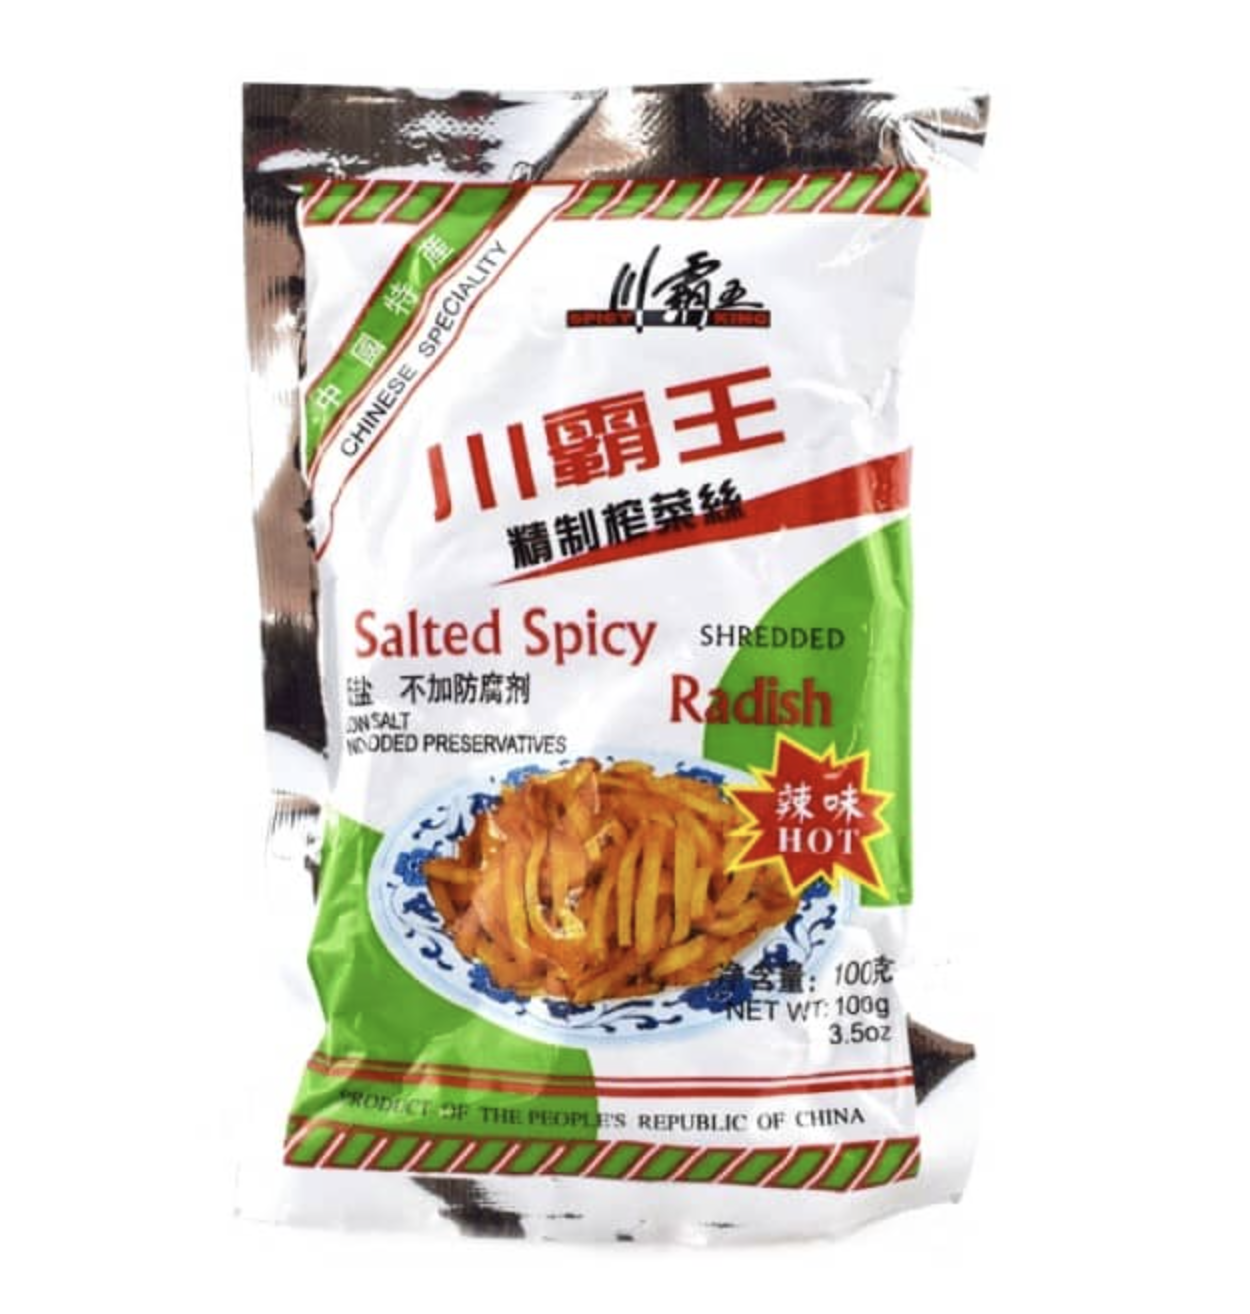 川霸王 精制榨菜丝 辣味 ~100g (3.5 oz) Salted spicy radish hot 100g (3.5 oz)